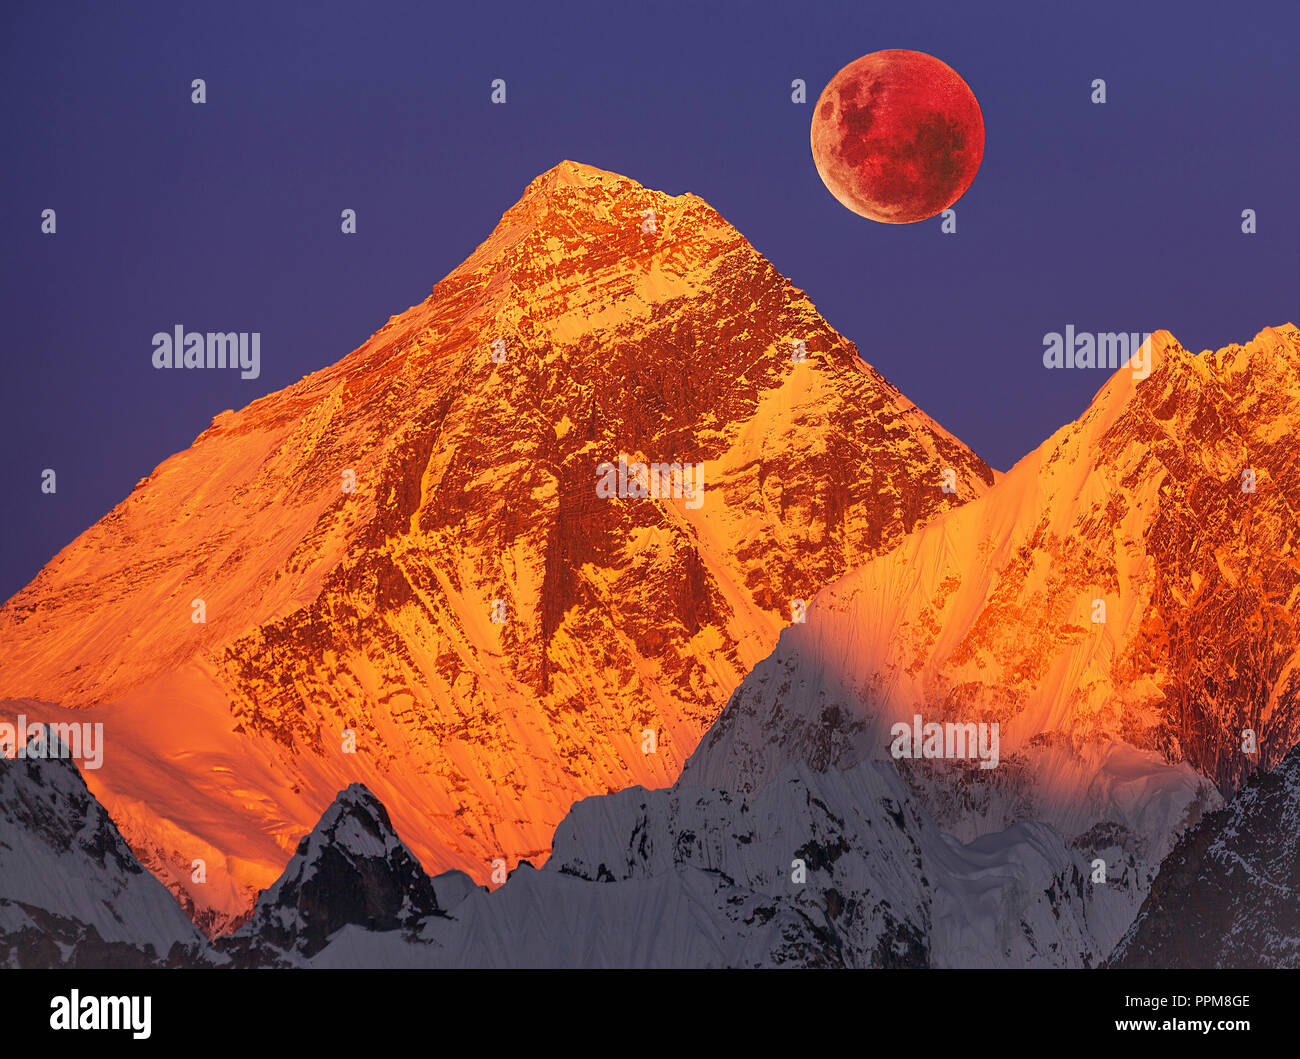 Majesty of nature: golden pyramid of Mount Everest (8,848 m) at sunset on a full moon. - Stock Image